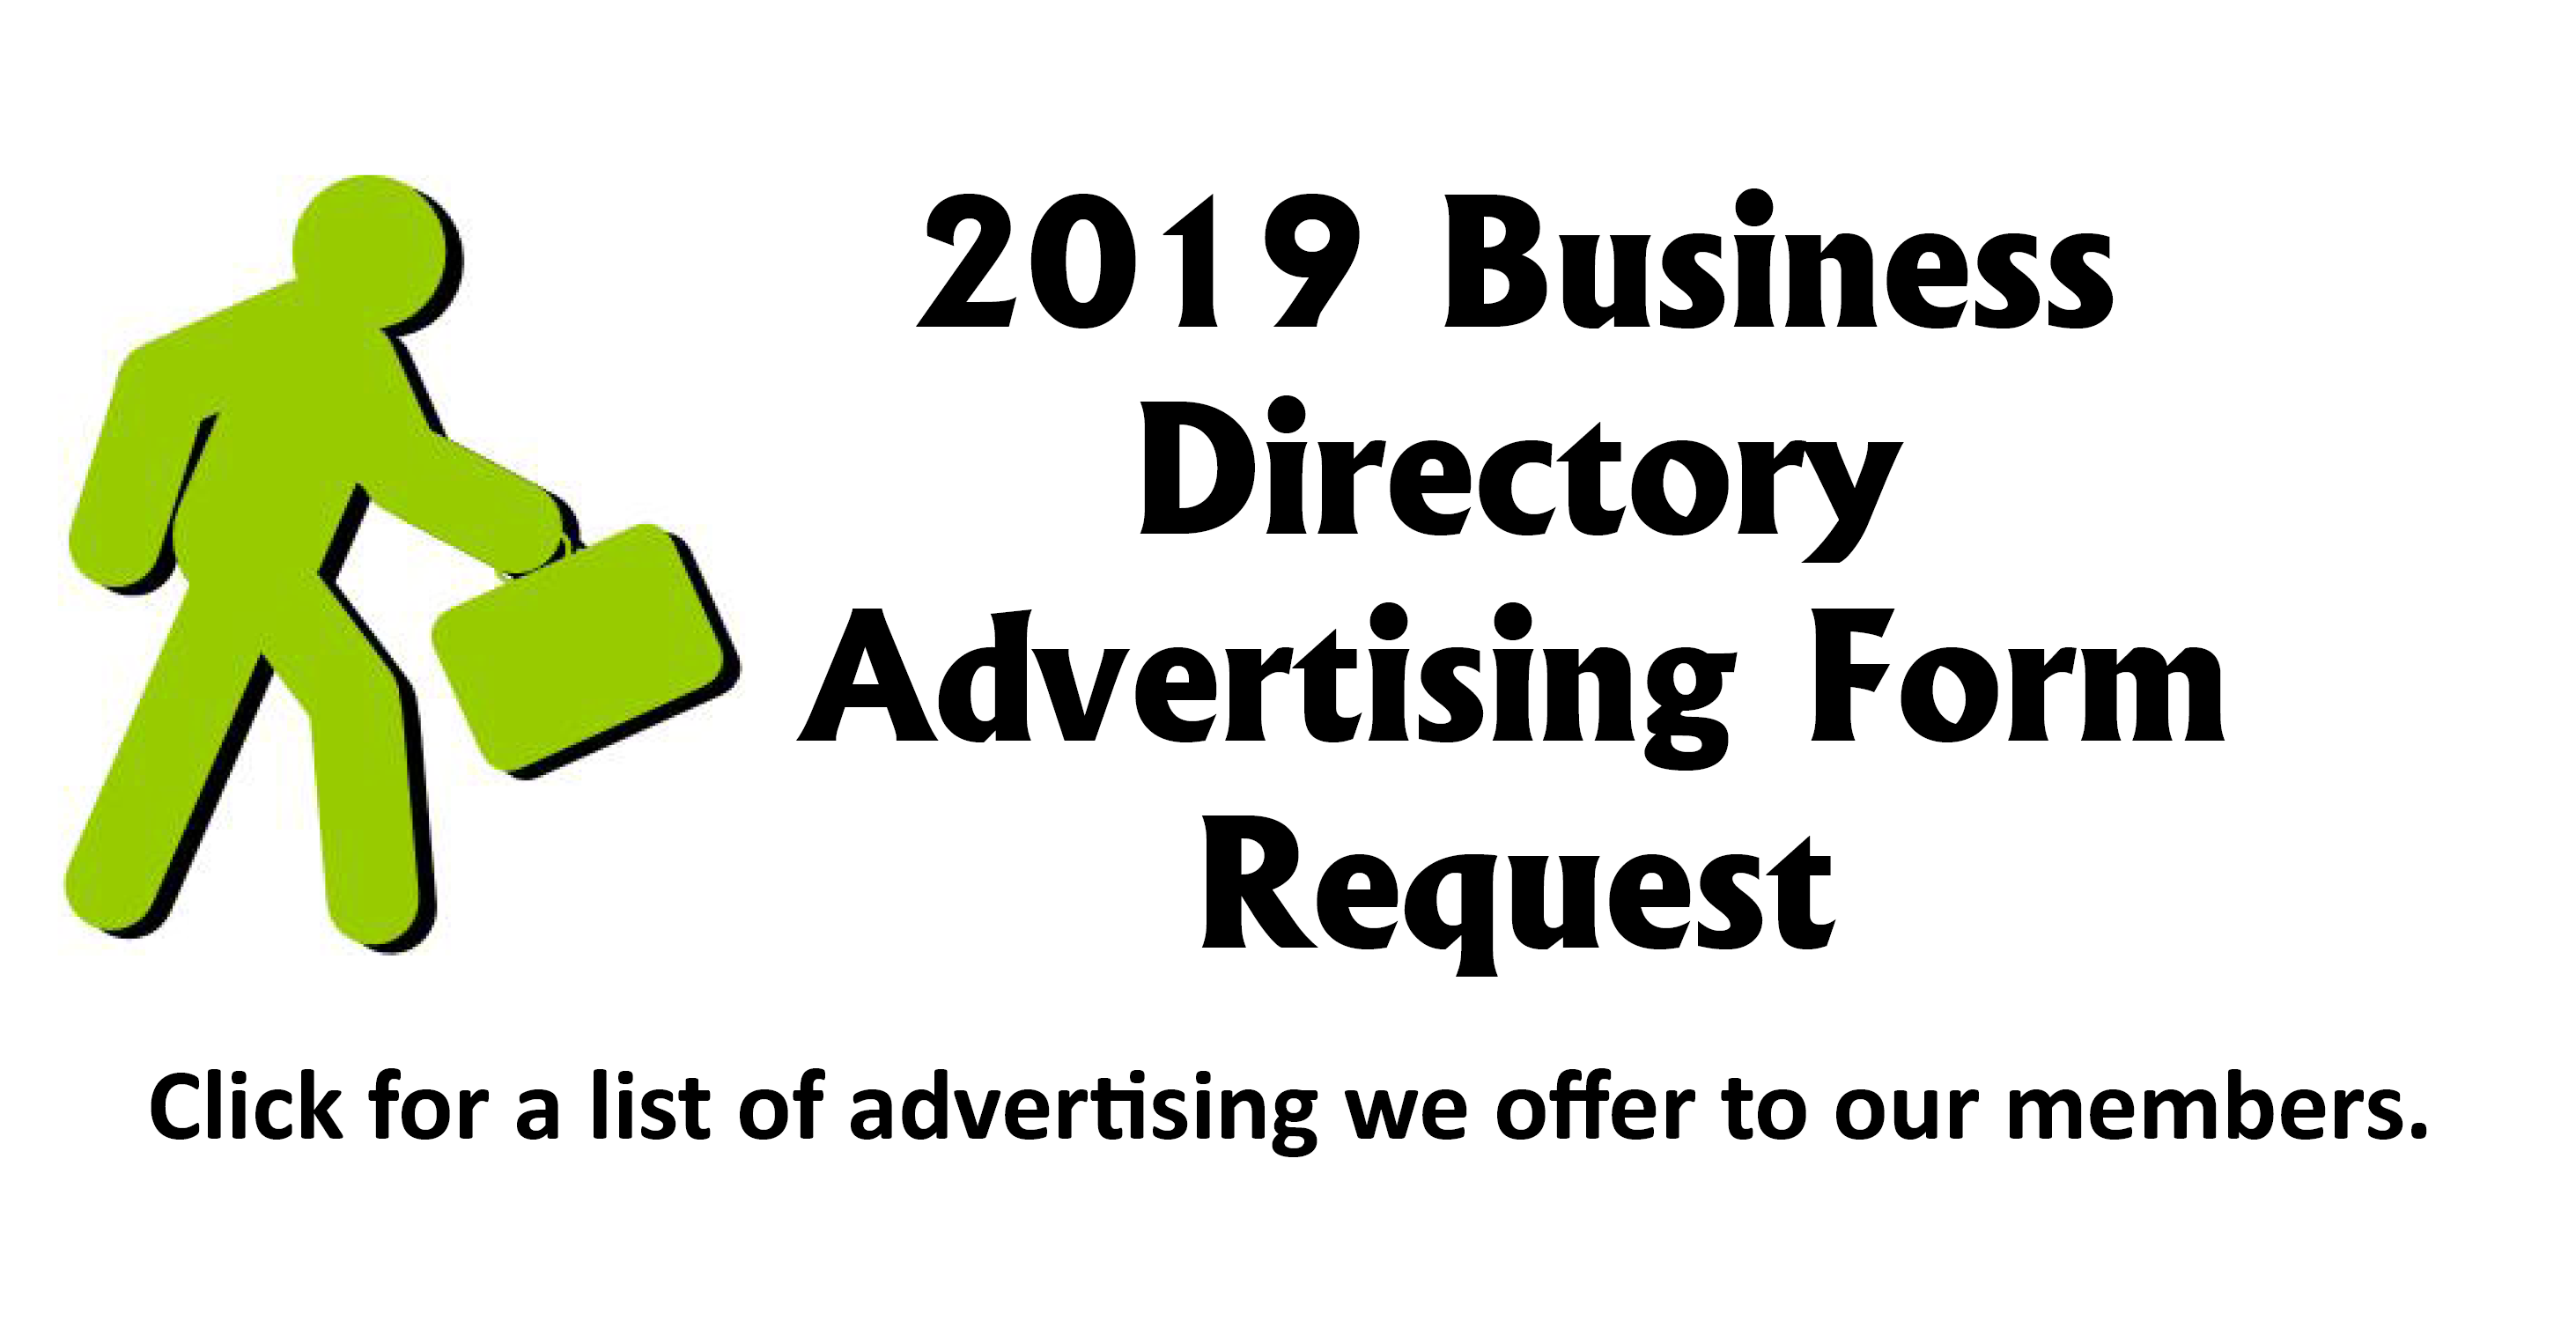 2018 Business Directory Advertising Form Request